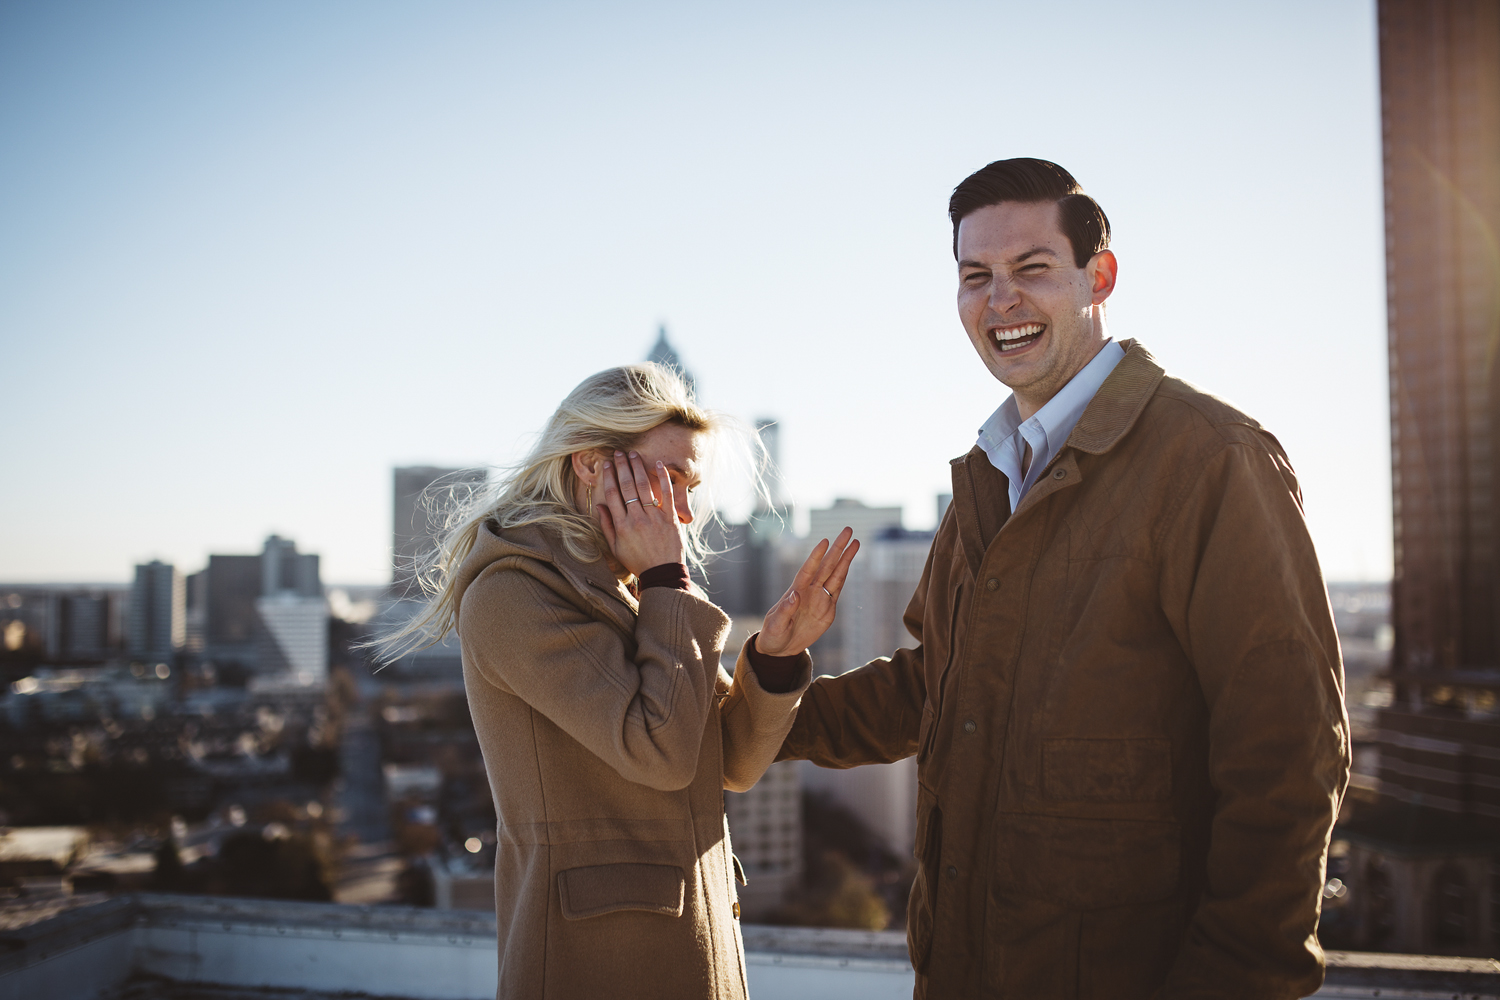 KDP_claire&drew - the proposal-118.jpg